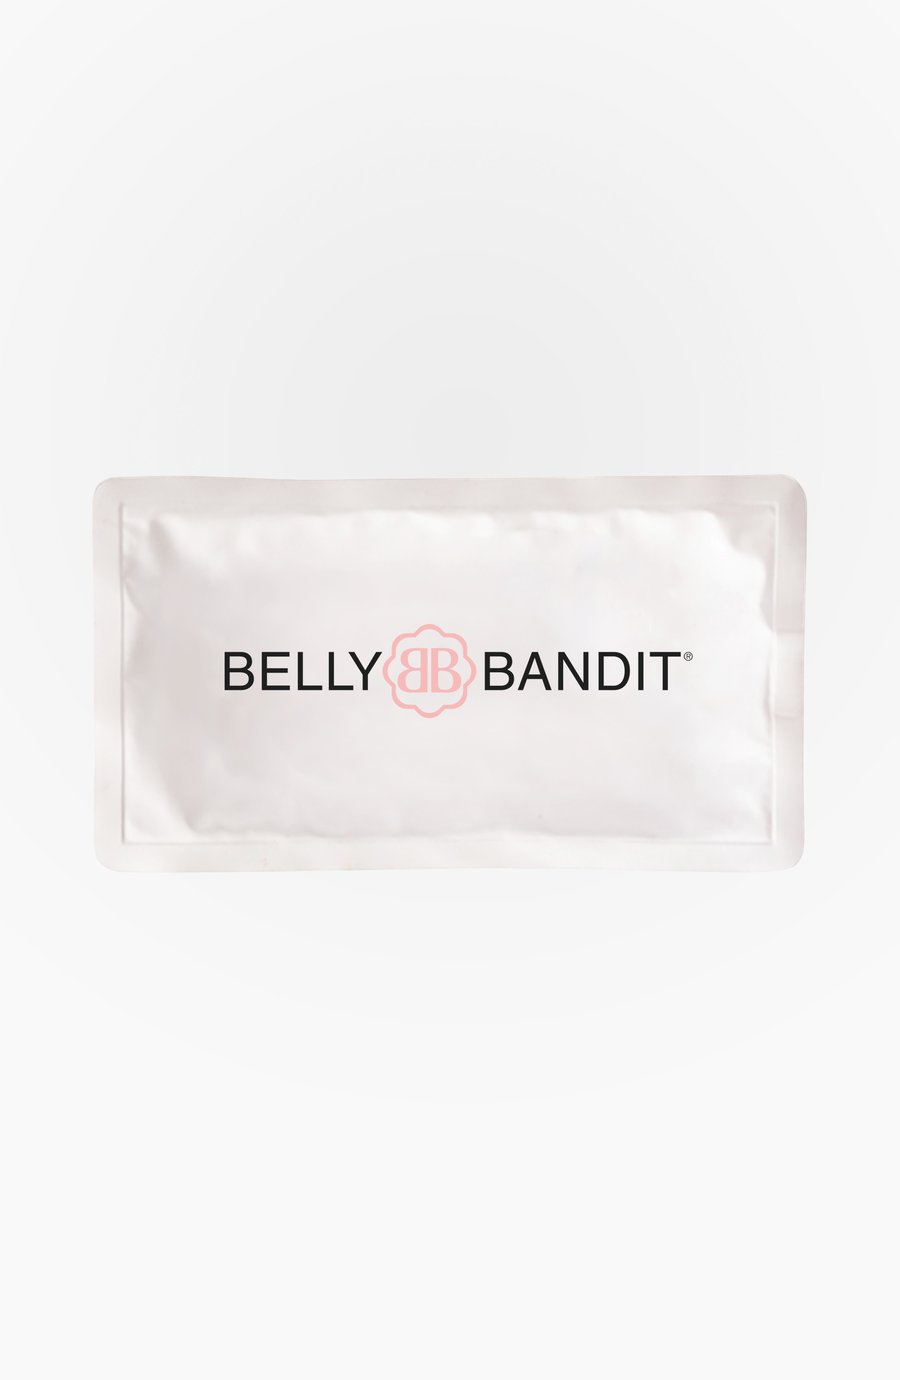 Hot/Cold Gel Pack by Belly Bandit